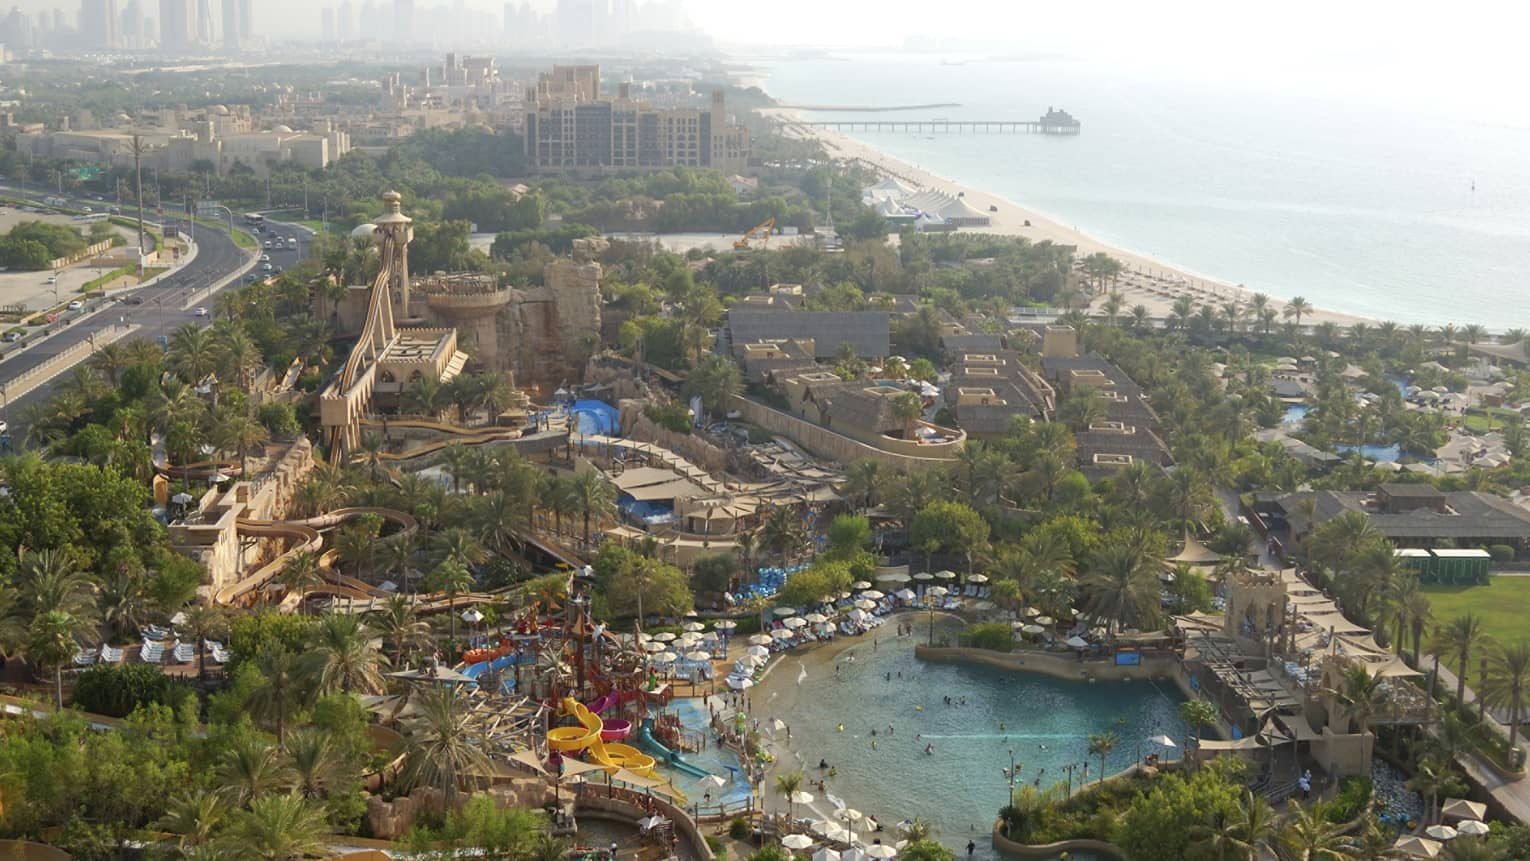 Aerial view of Wild Wadi Waterpark with waterslides, Dubai skyline visible